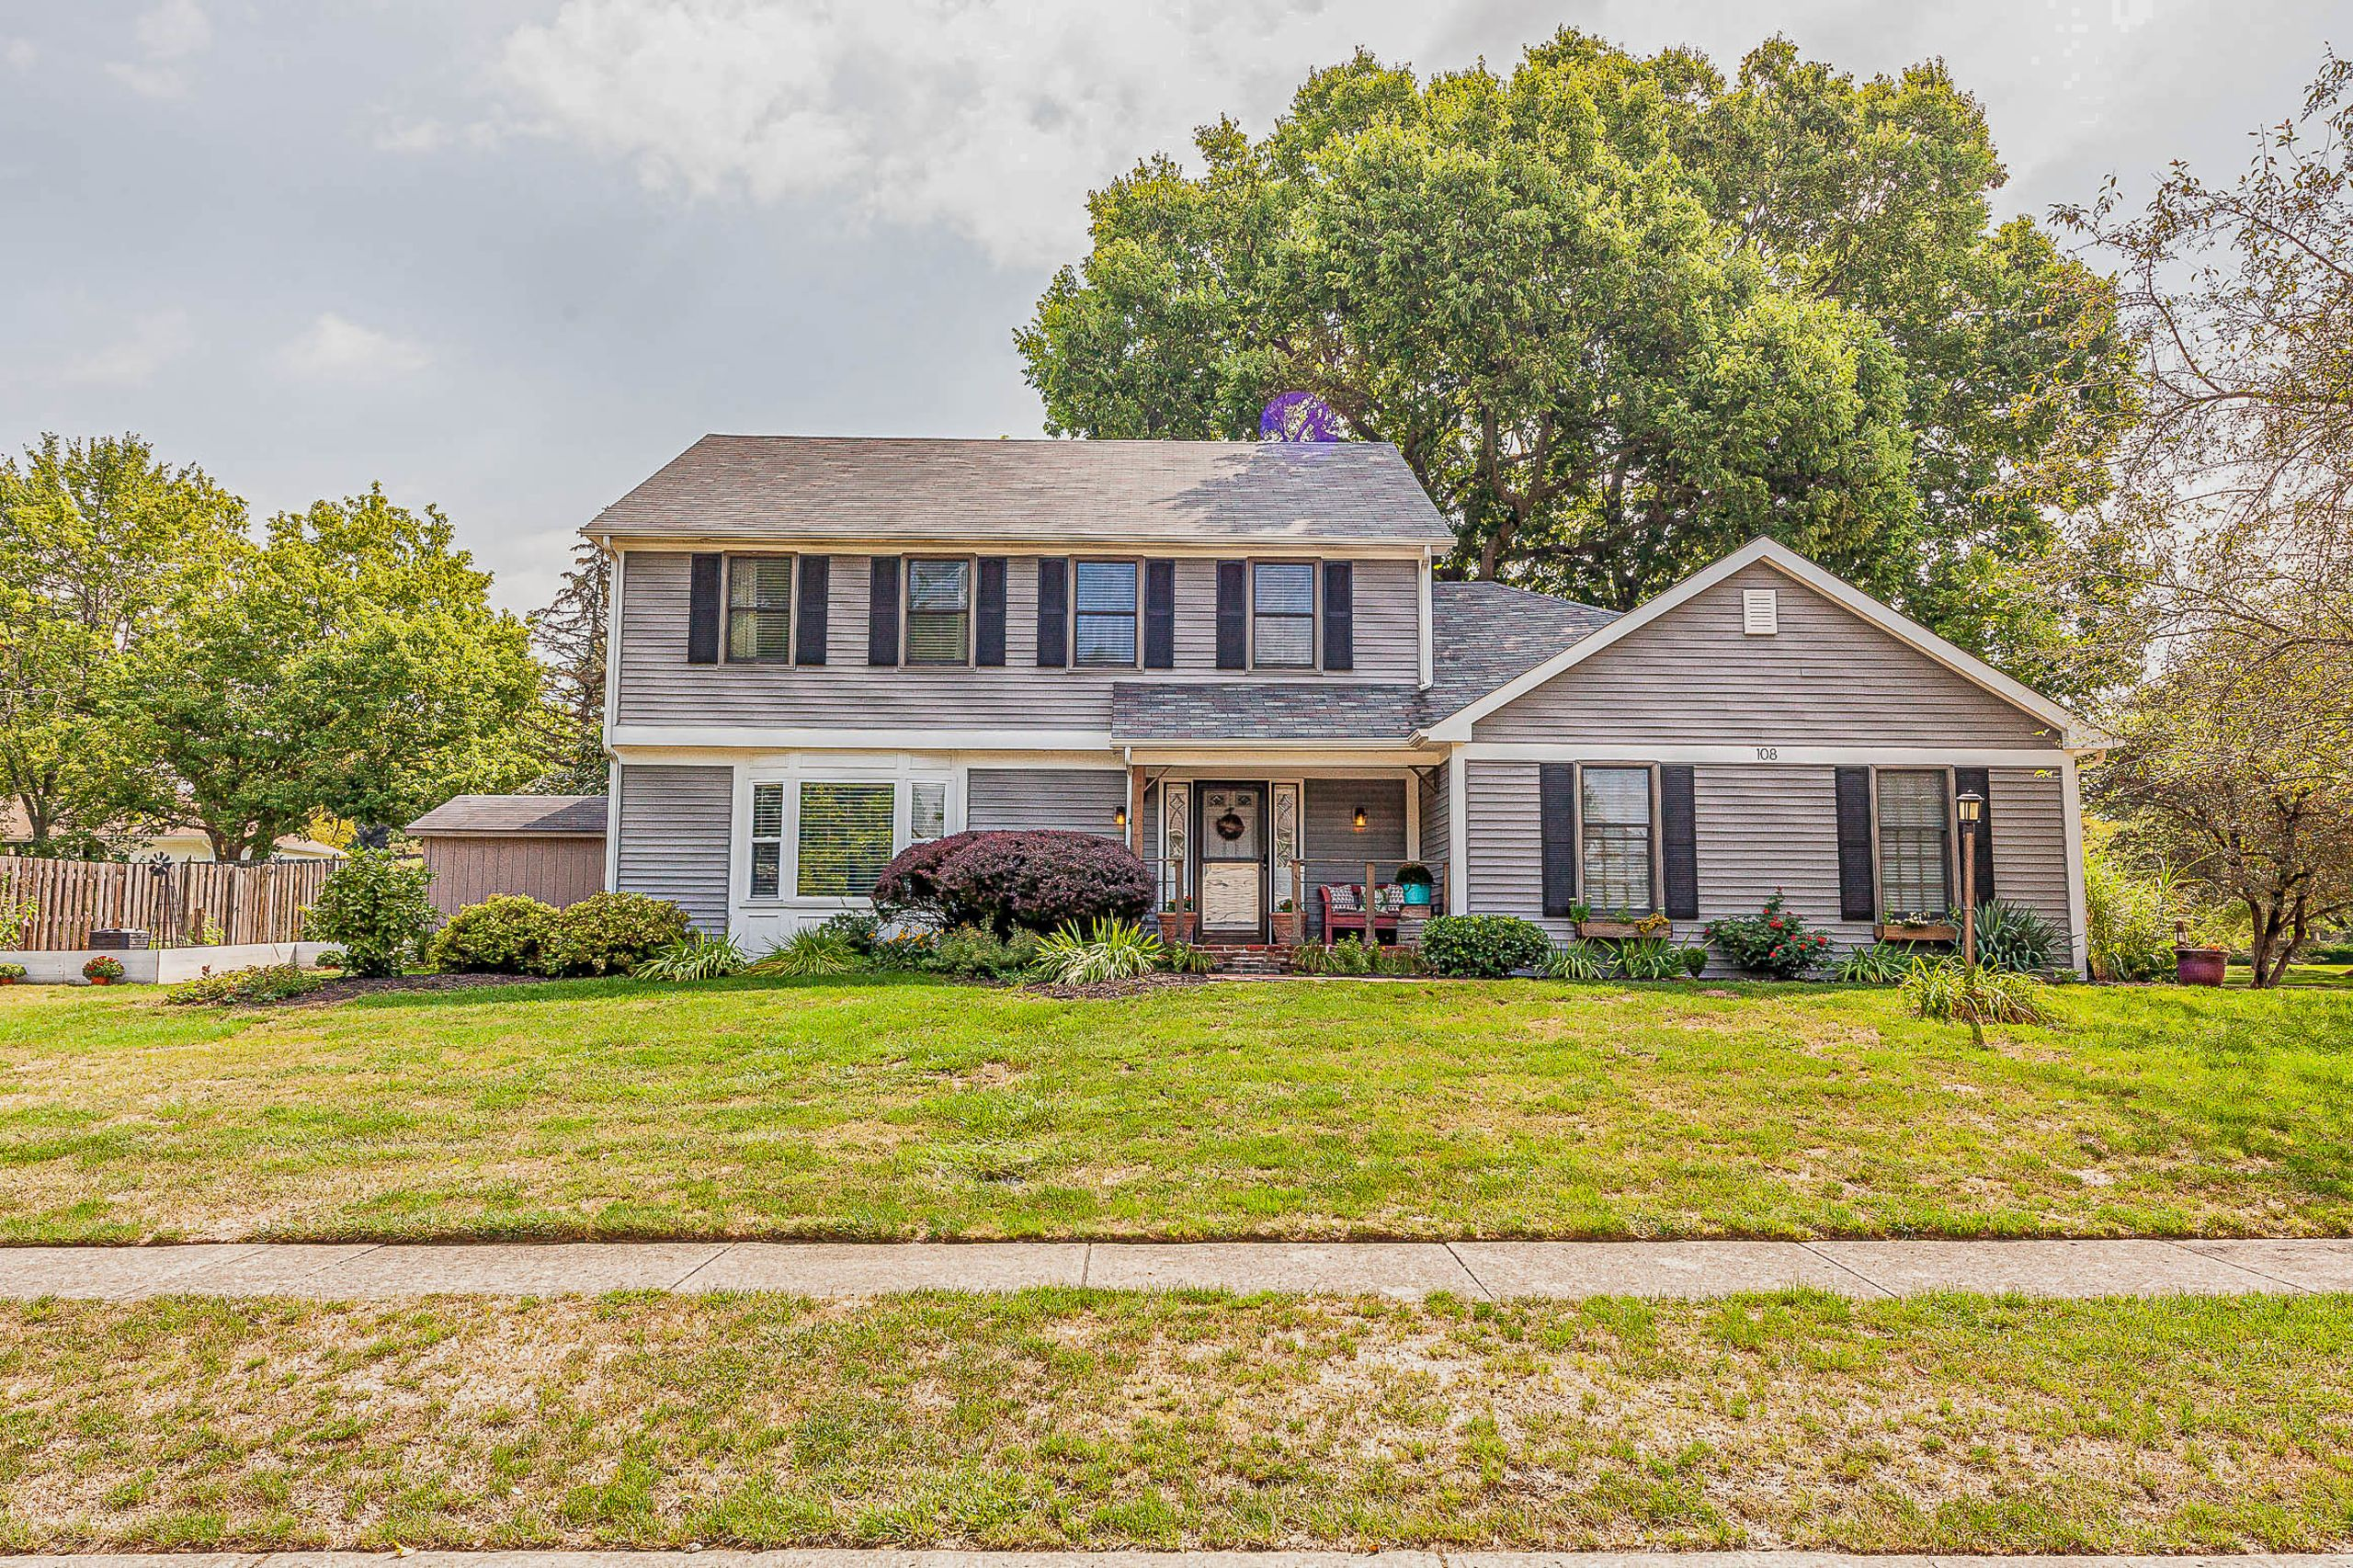 Sold! 108 Goldenrod Lane, Fishers, IN 46038 4 bed/2.5 bath with finished basement.  $289,900